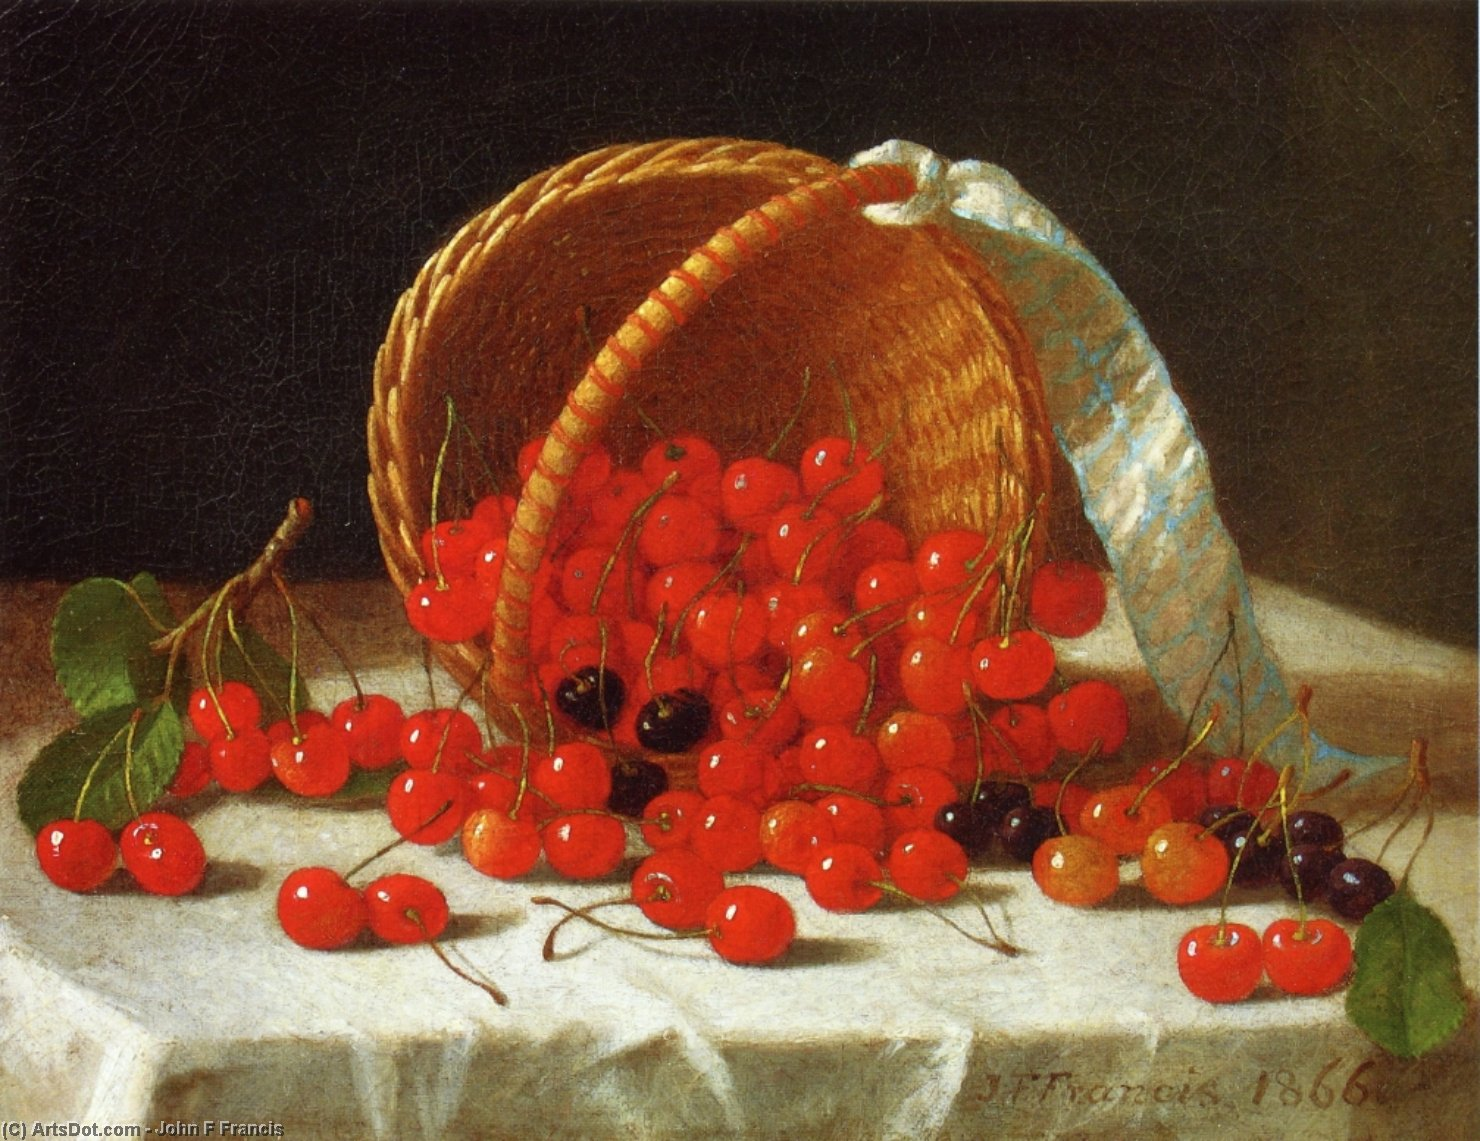 Cherries Spilling from a Basket, 1866 by John F Francis (1905-1990, United States) | ArtsDot.com